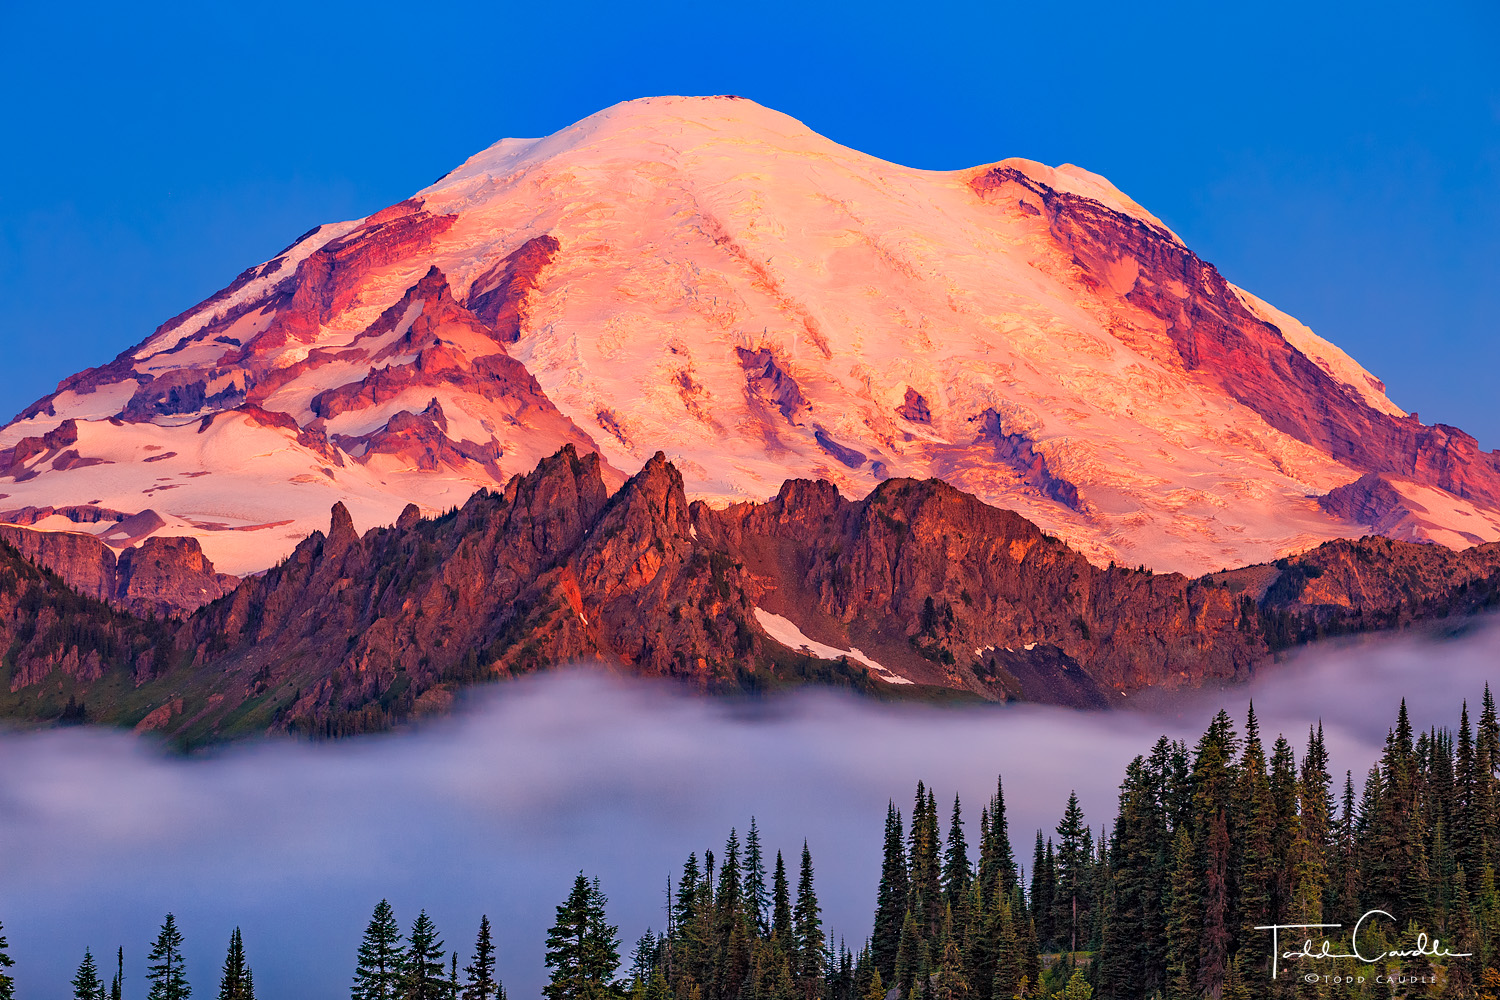 Clouds drift below Cowlitz Ridge as mighty Mount Rainier (elevation 14,411') catches the first blush of sunrise color.